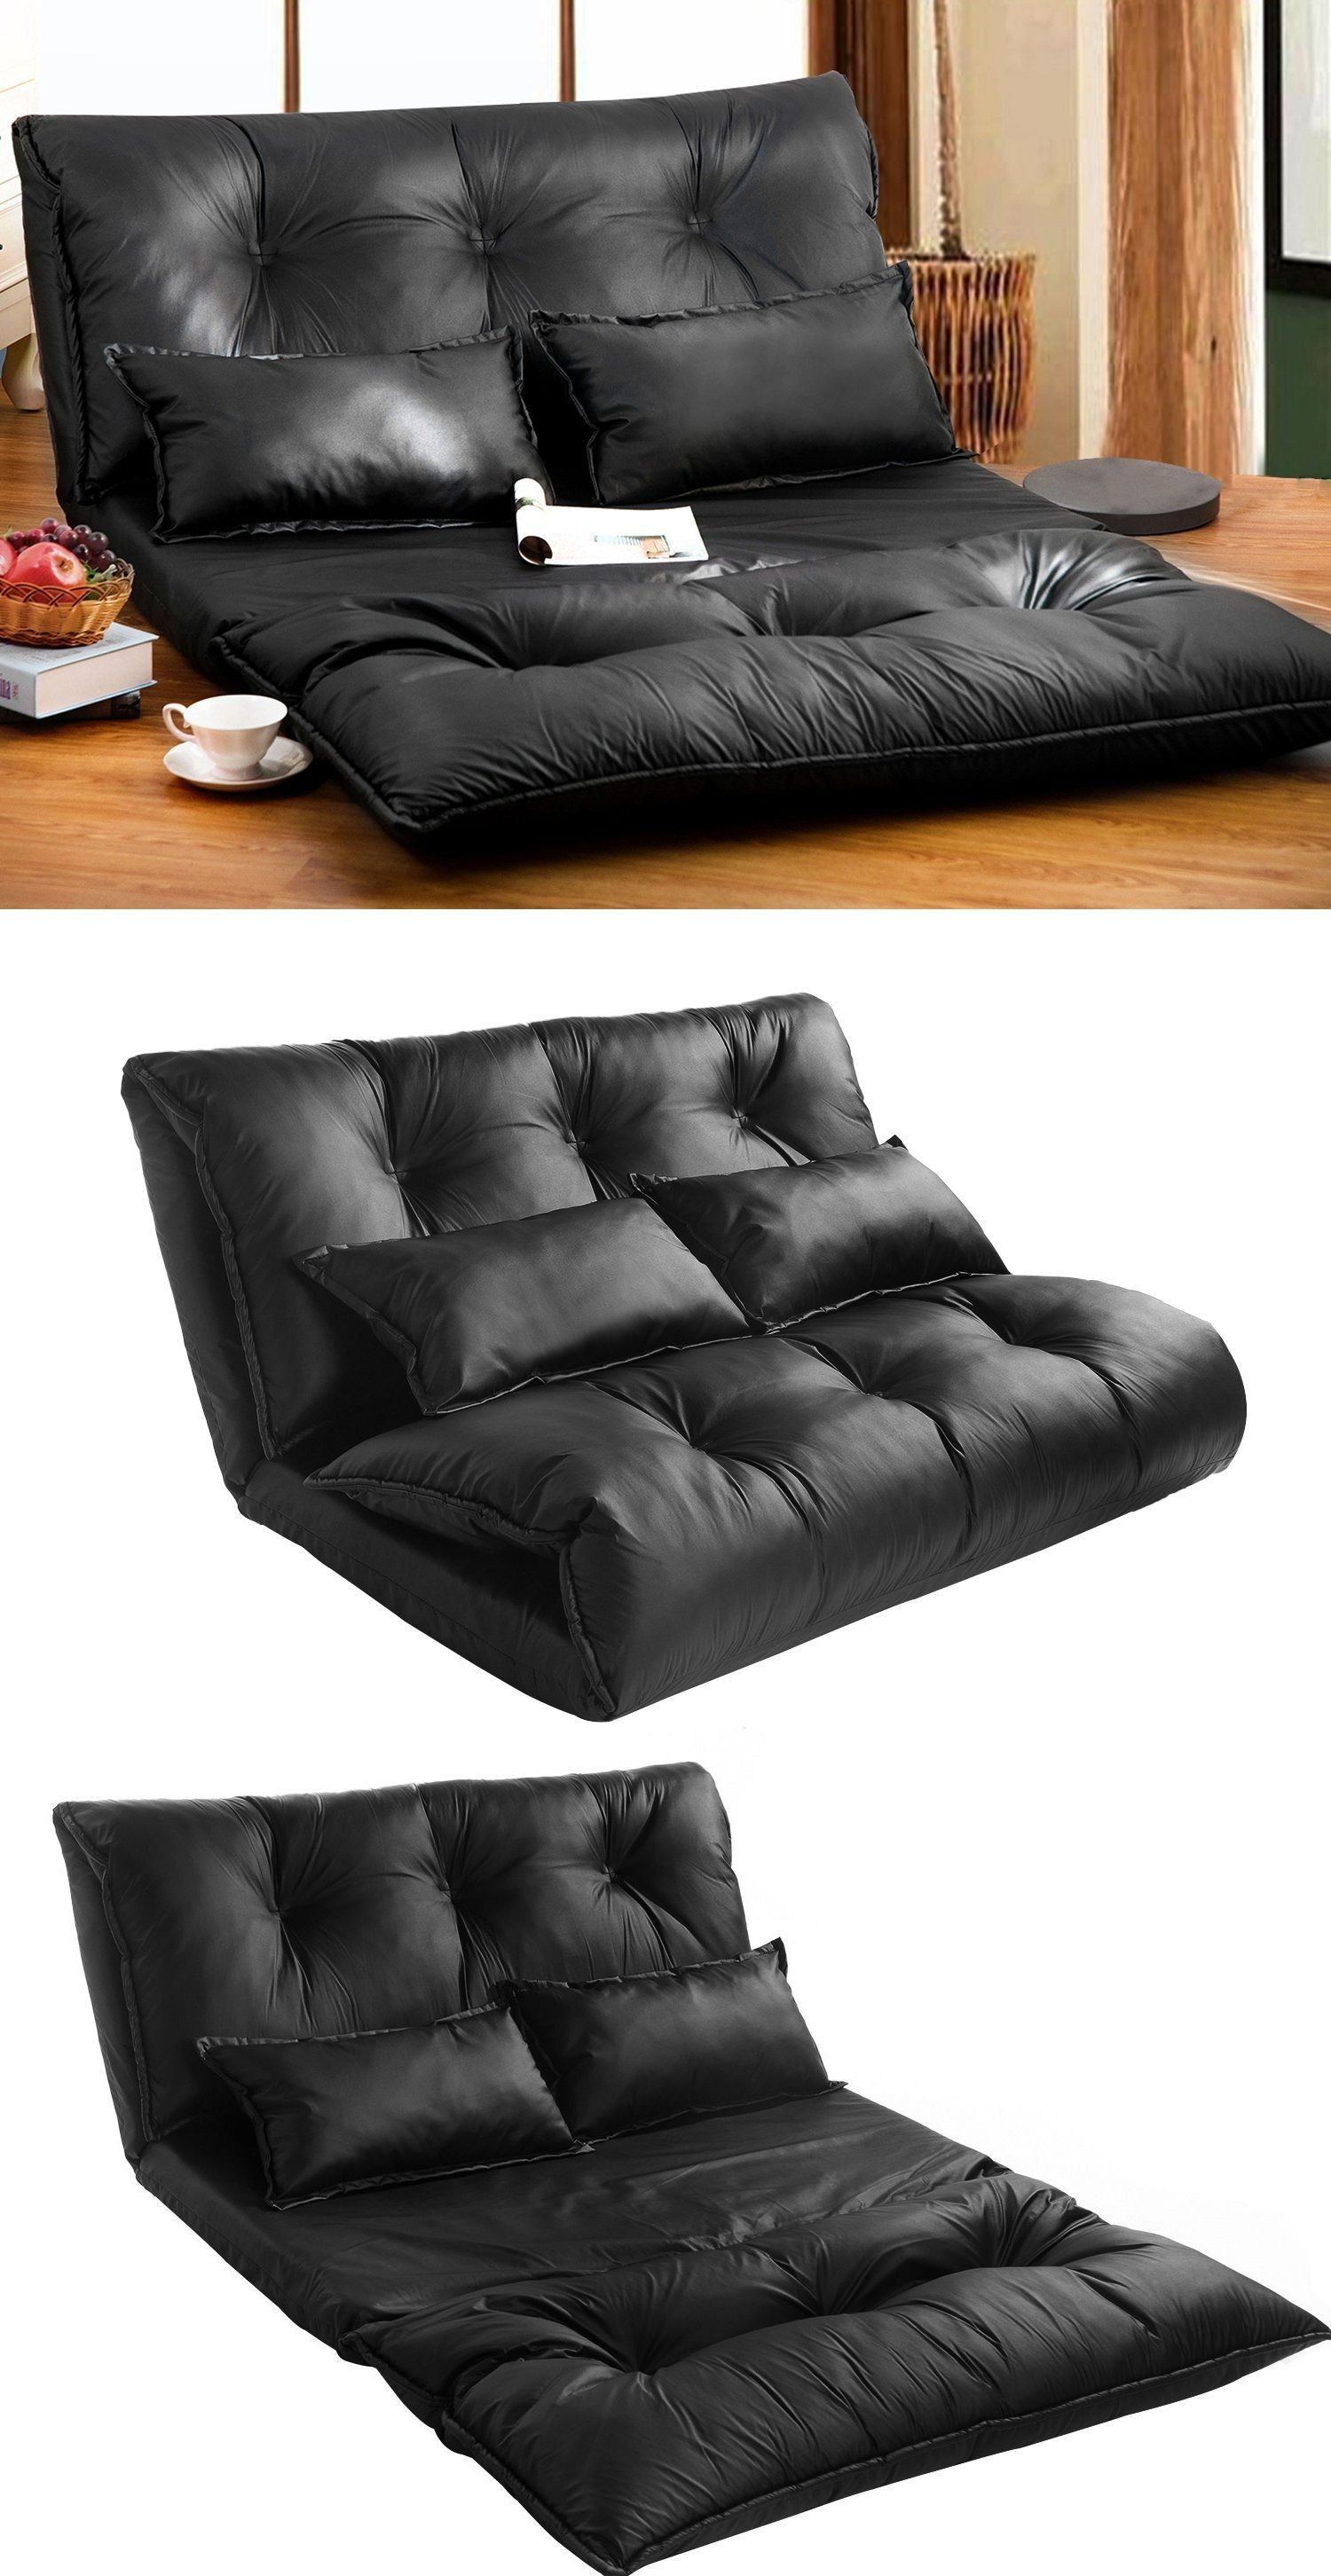 Pu Leather Foldable Modern Leisure Sofa Bed Video Gaming Sofa with Two Pillows